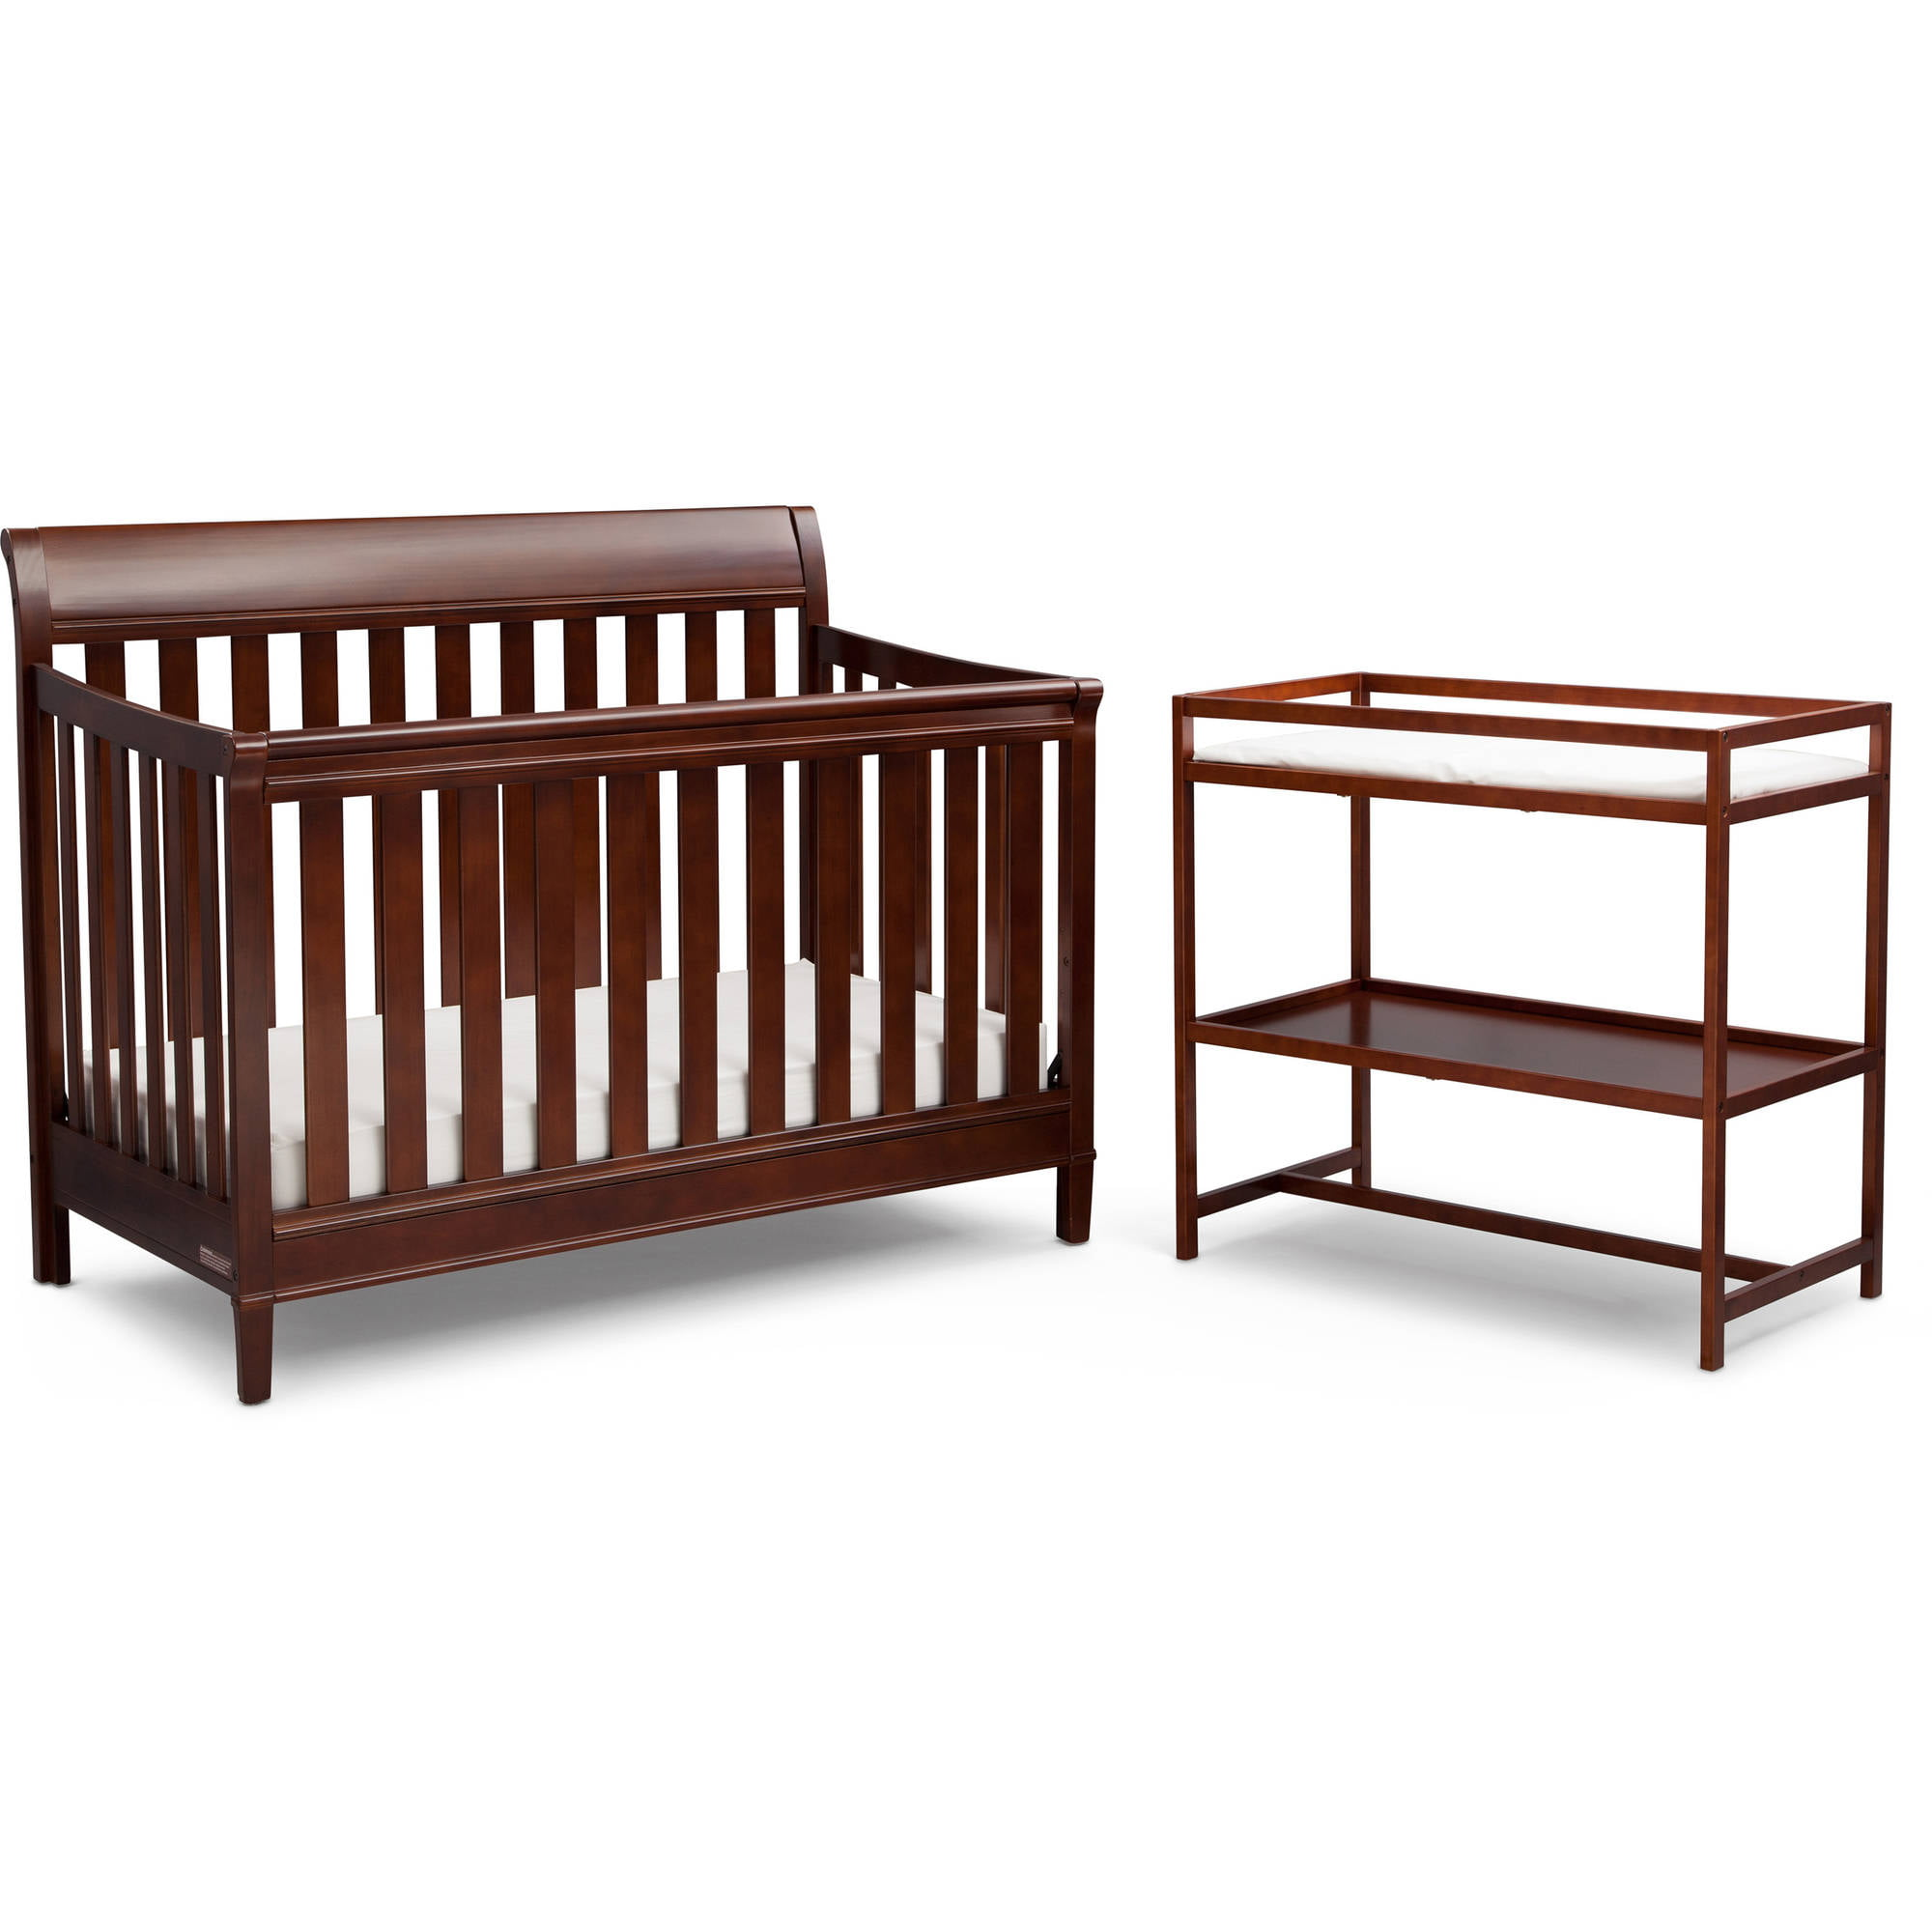 Crib changing table dresser set walmart walmart baby Baby crib with changing table